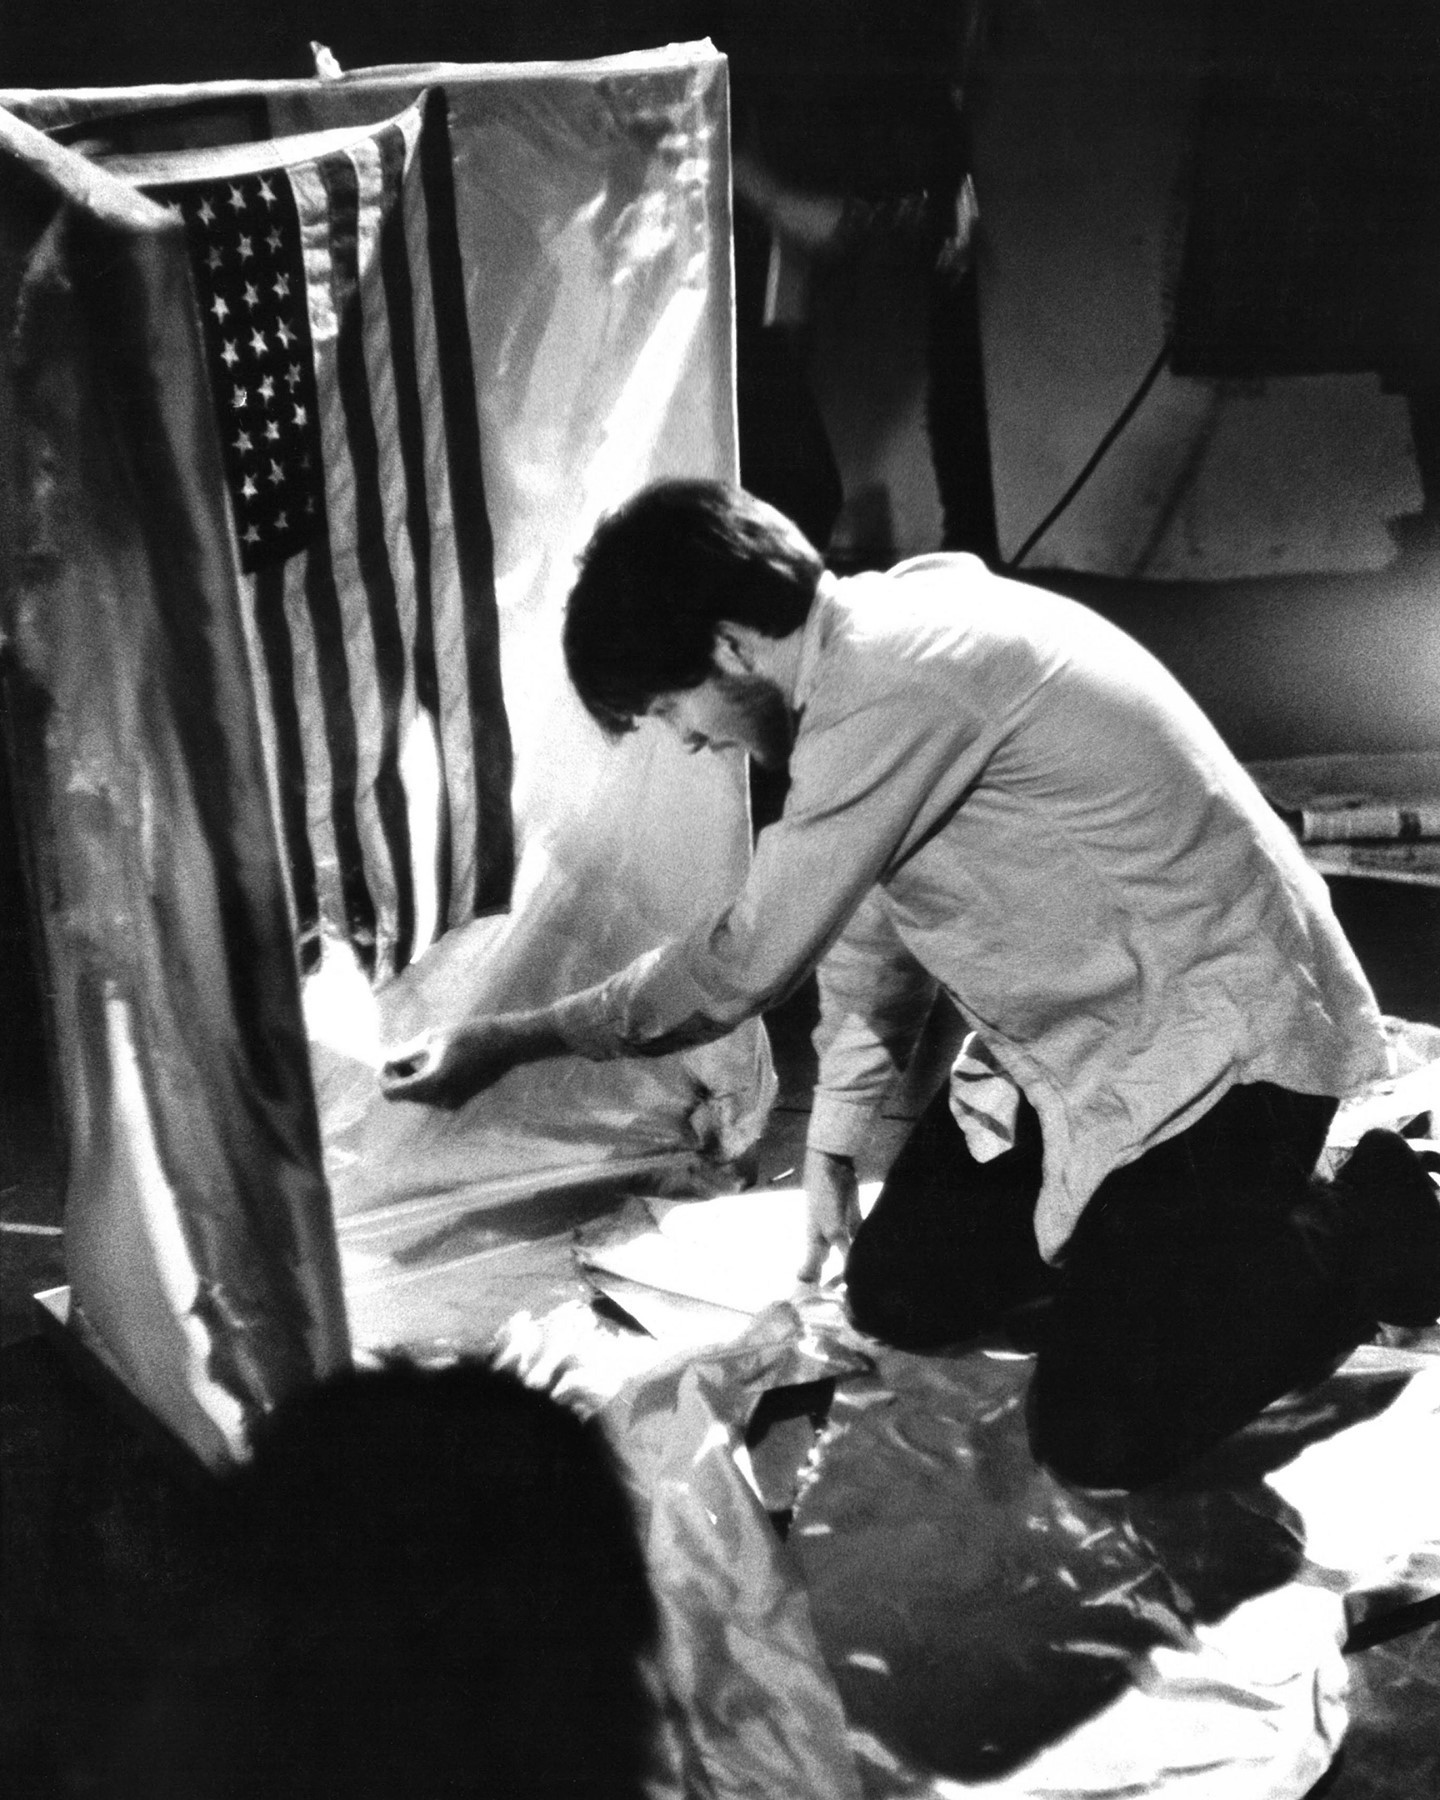 """Did you happen to catch the exhibition """"In Focus: Protest"""" at @GettyMuseum? If so, you might have seen this incendiary image of artist José Rodríguez-Soltero burning an American flag in his 1966 performance protesting the Vietnam War.  This photo was captured by our own Fred McDarrah, whose body of work holds a wealth of protest imagery - from early Pride marches to the infamous 1969 DNC protest to massive anti-nuclear arms rallies. He also closely associated with some of the most revolutionary artists, writers, and musicians of the 1960s - so this image represents a natural intersection of McDarrah's interests as a photographer.  To learn more about McDarrah and his work as a staff photographer at the Village Voice, check out the link in our bio! And be sure to stay tuned for more iconic images 📸  © Fred W. McDarrah/MUUS Collection"""